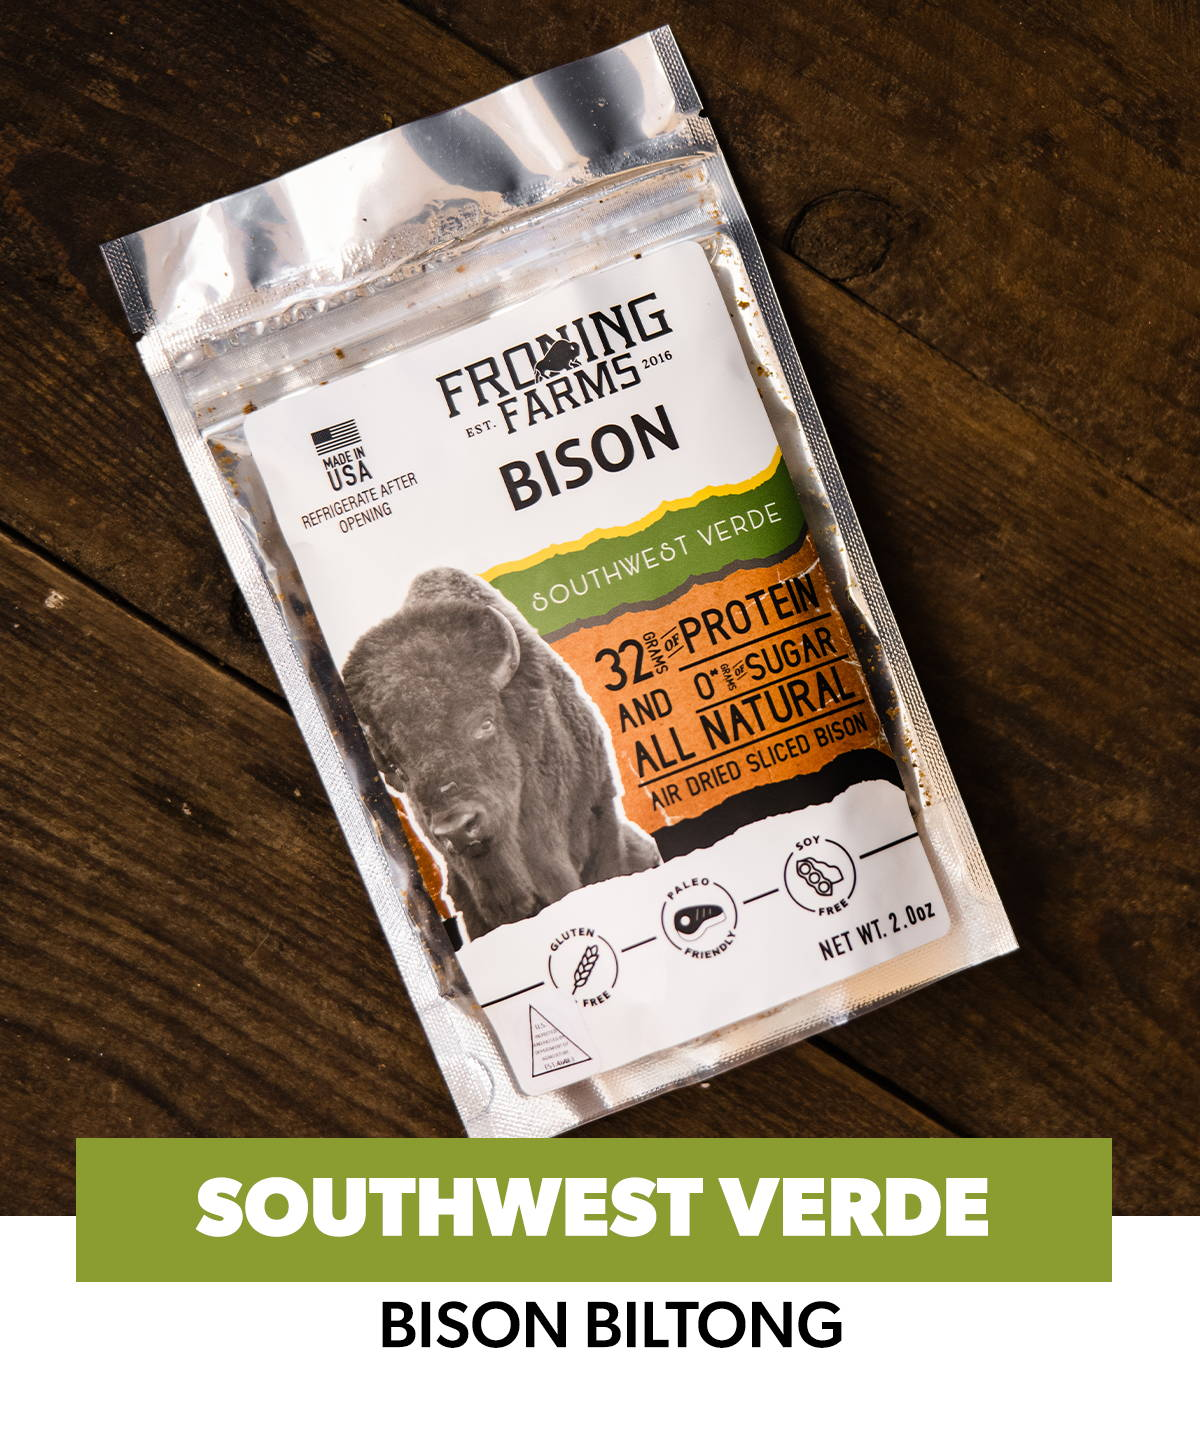 bison biltong southwest verde froning farms